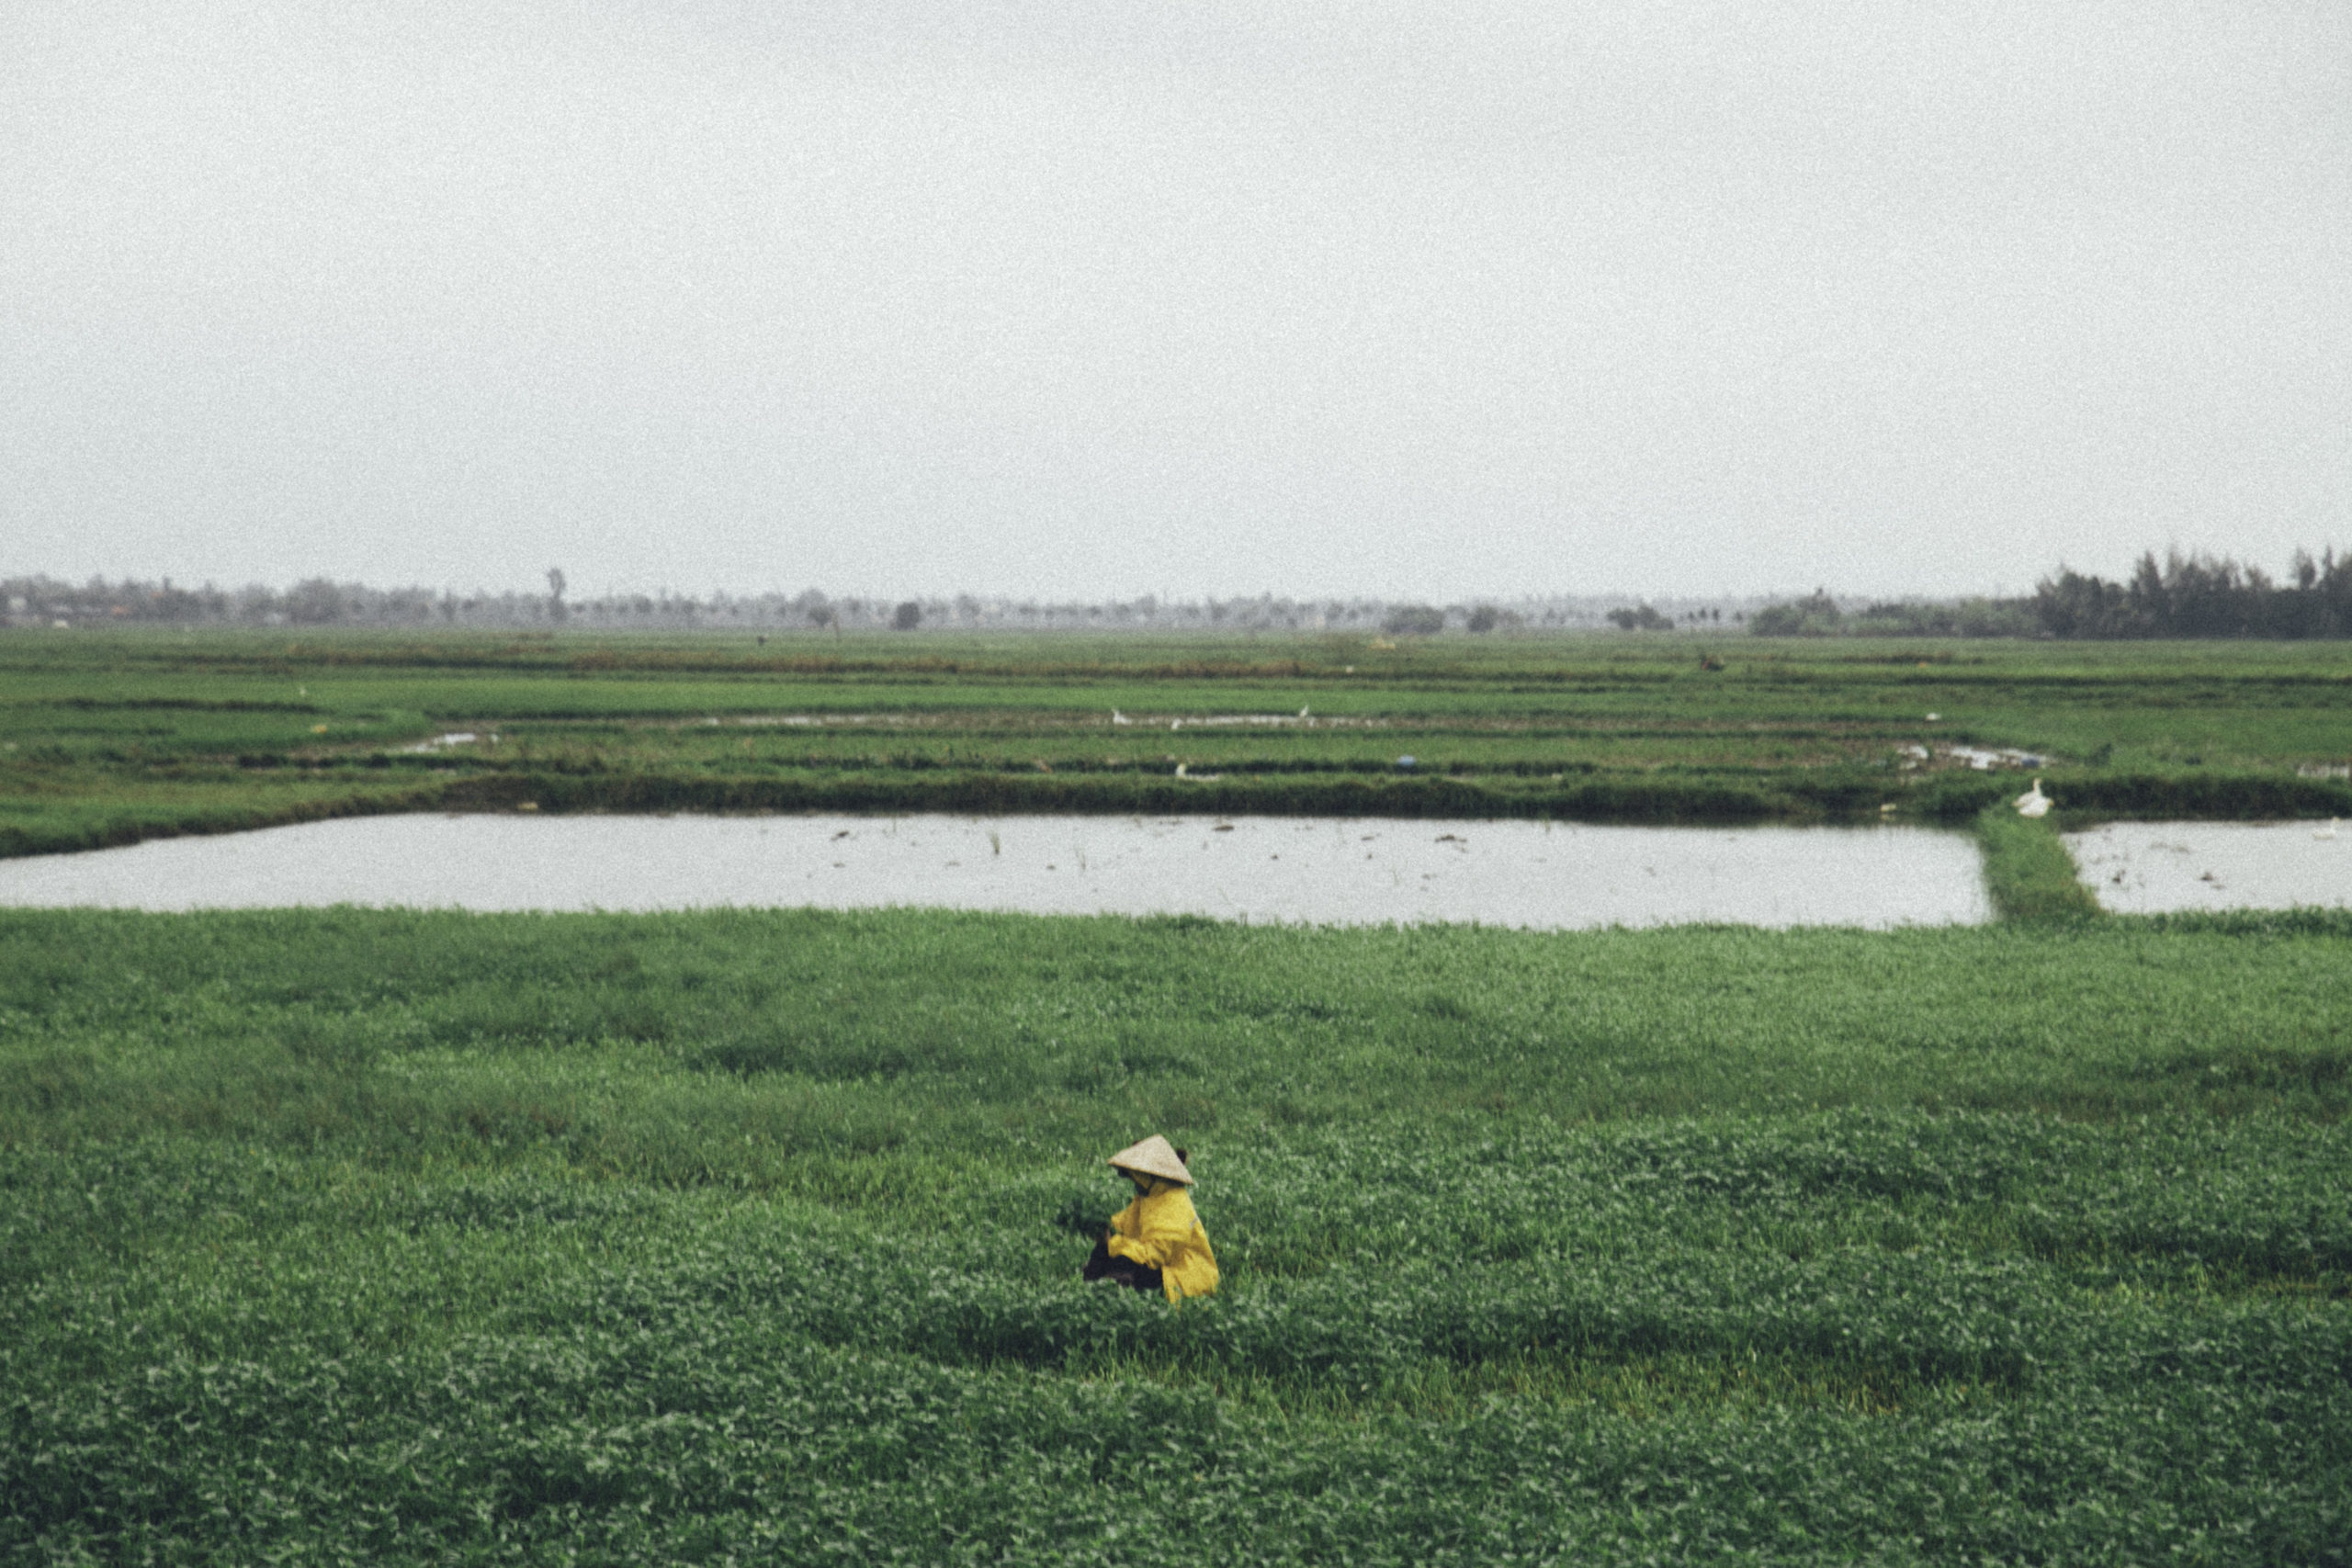 green_marsh _land_with_person _in_centre